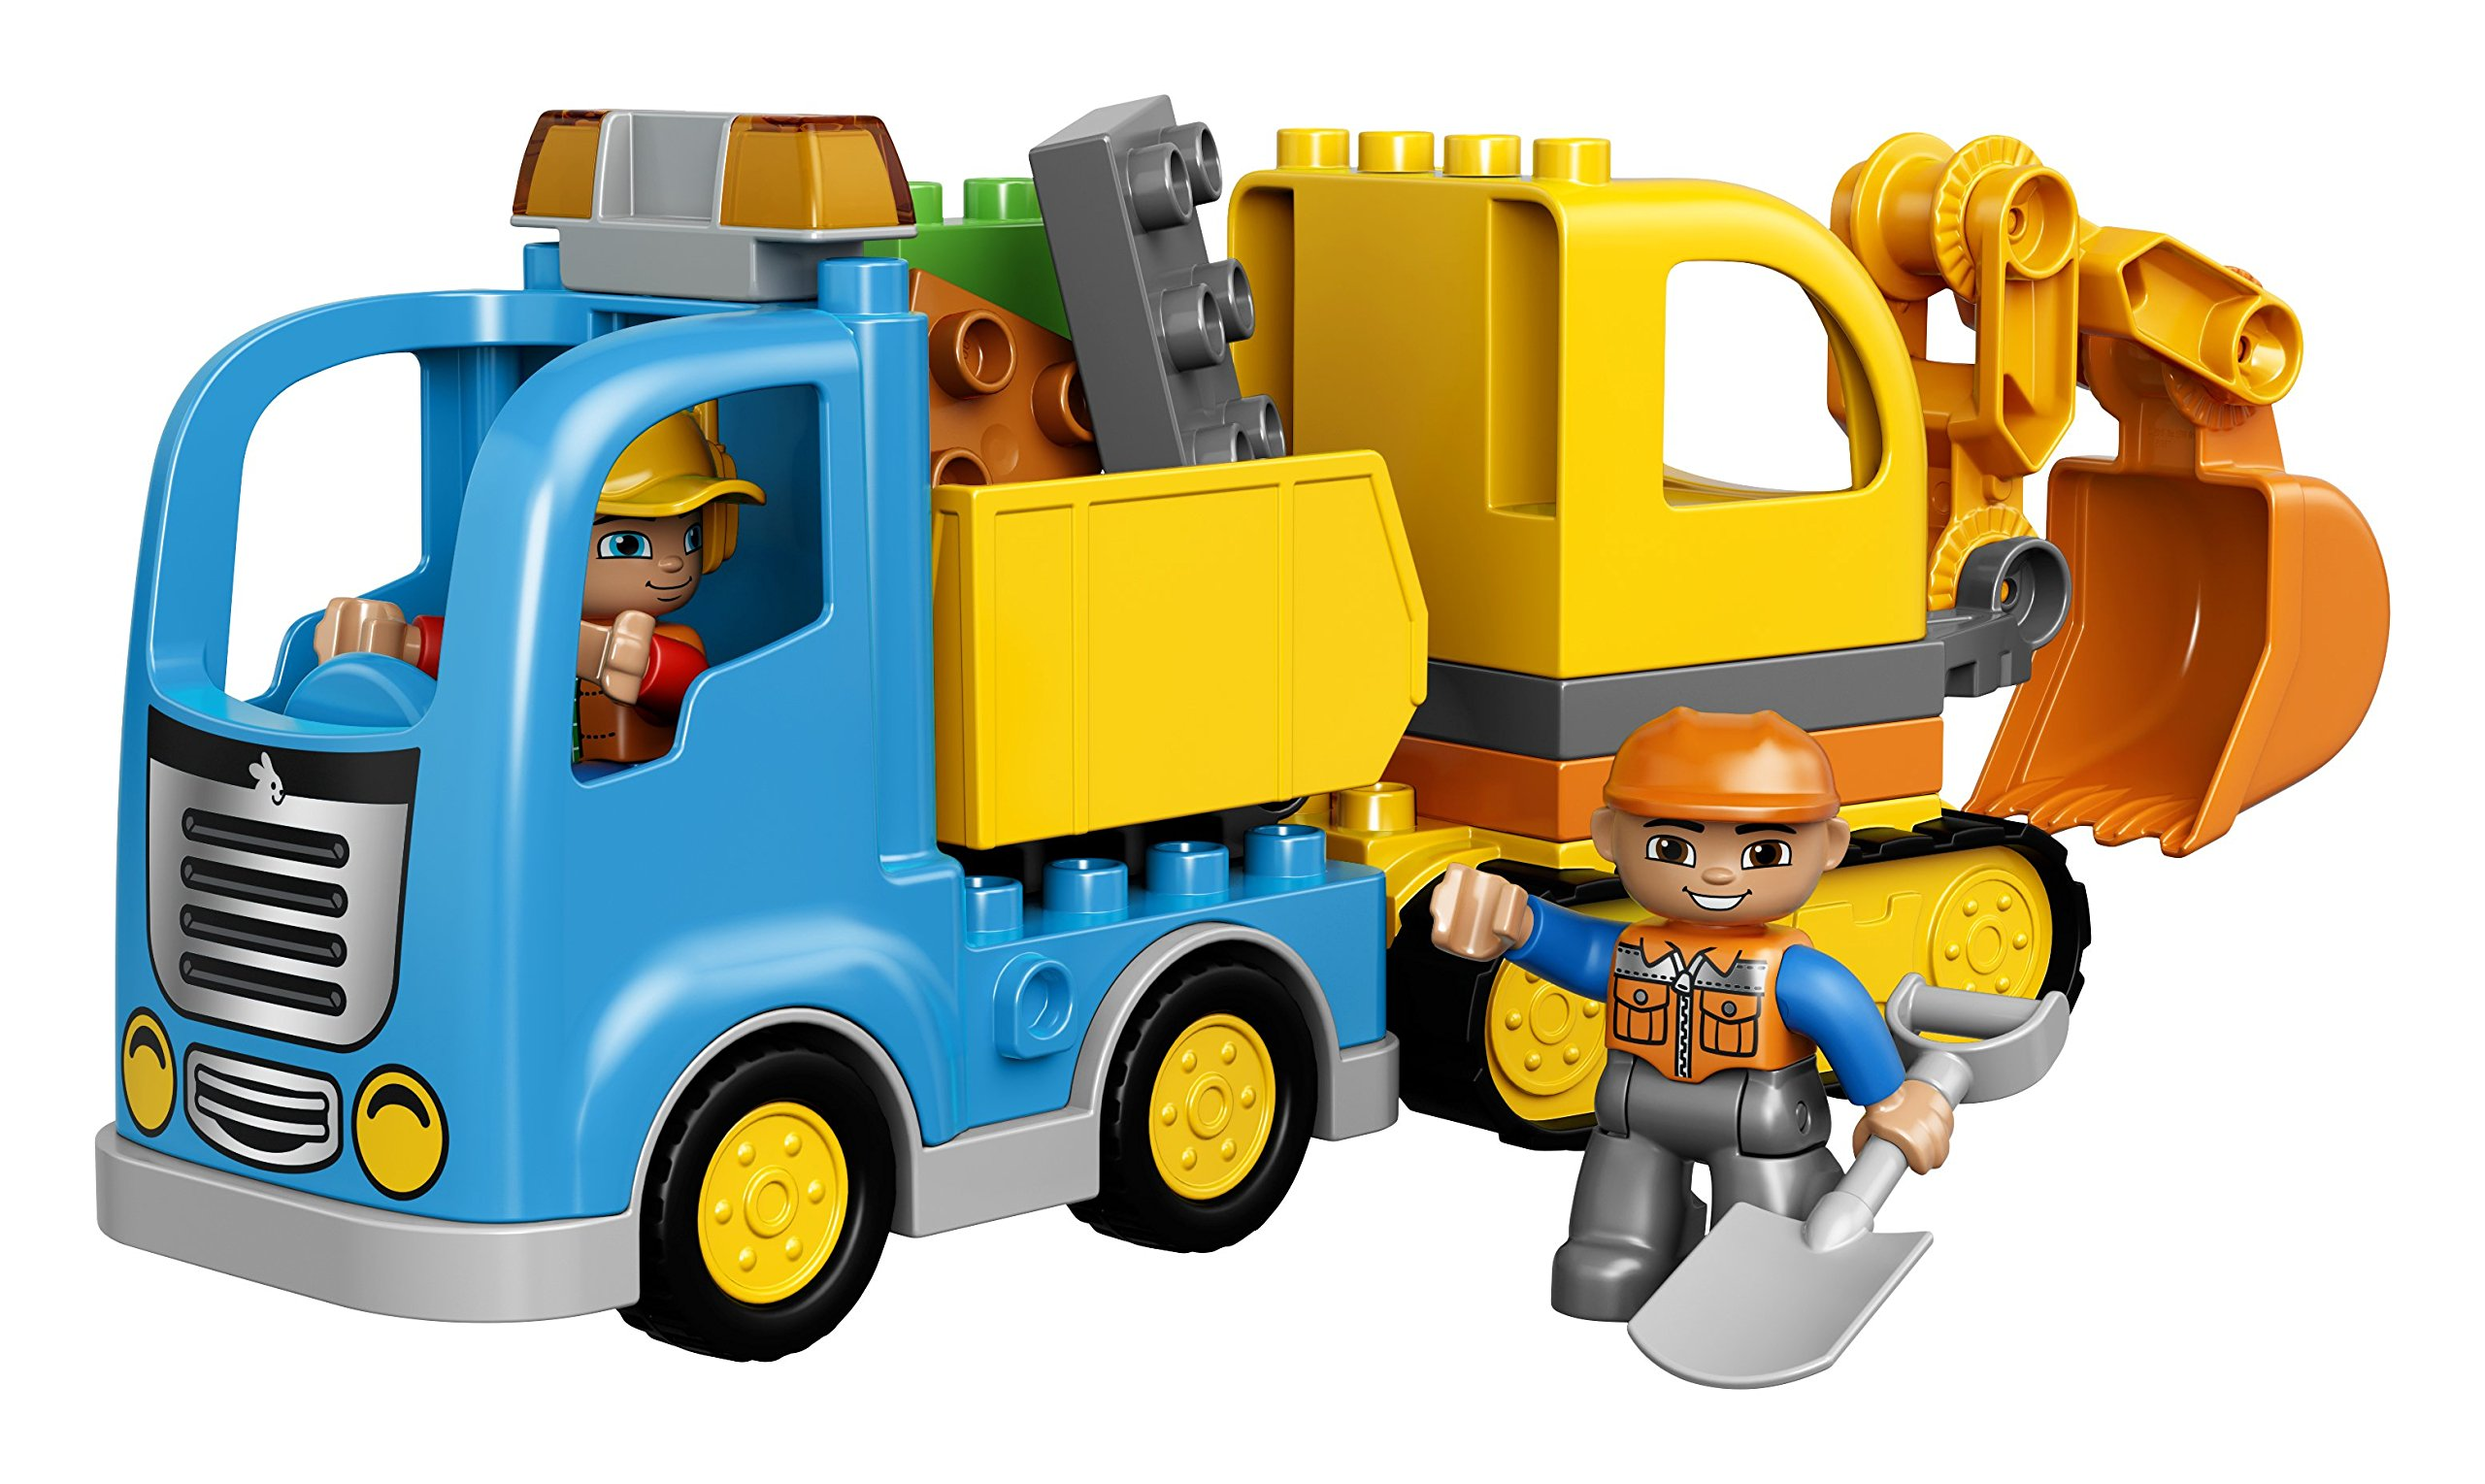 LEGO DUPLO Town Toddler Truck Toy by LEGO (Image #9)